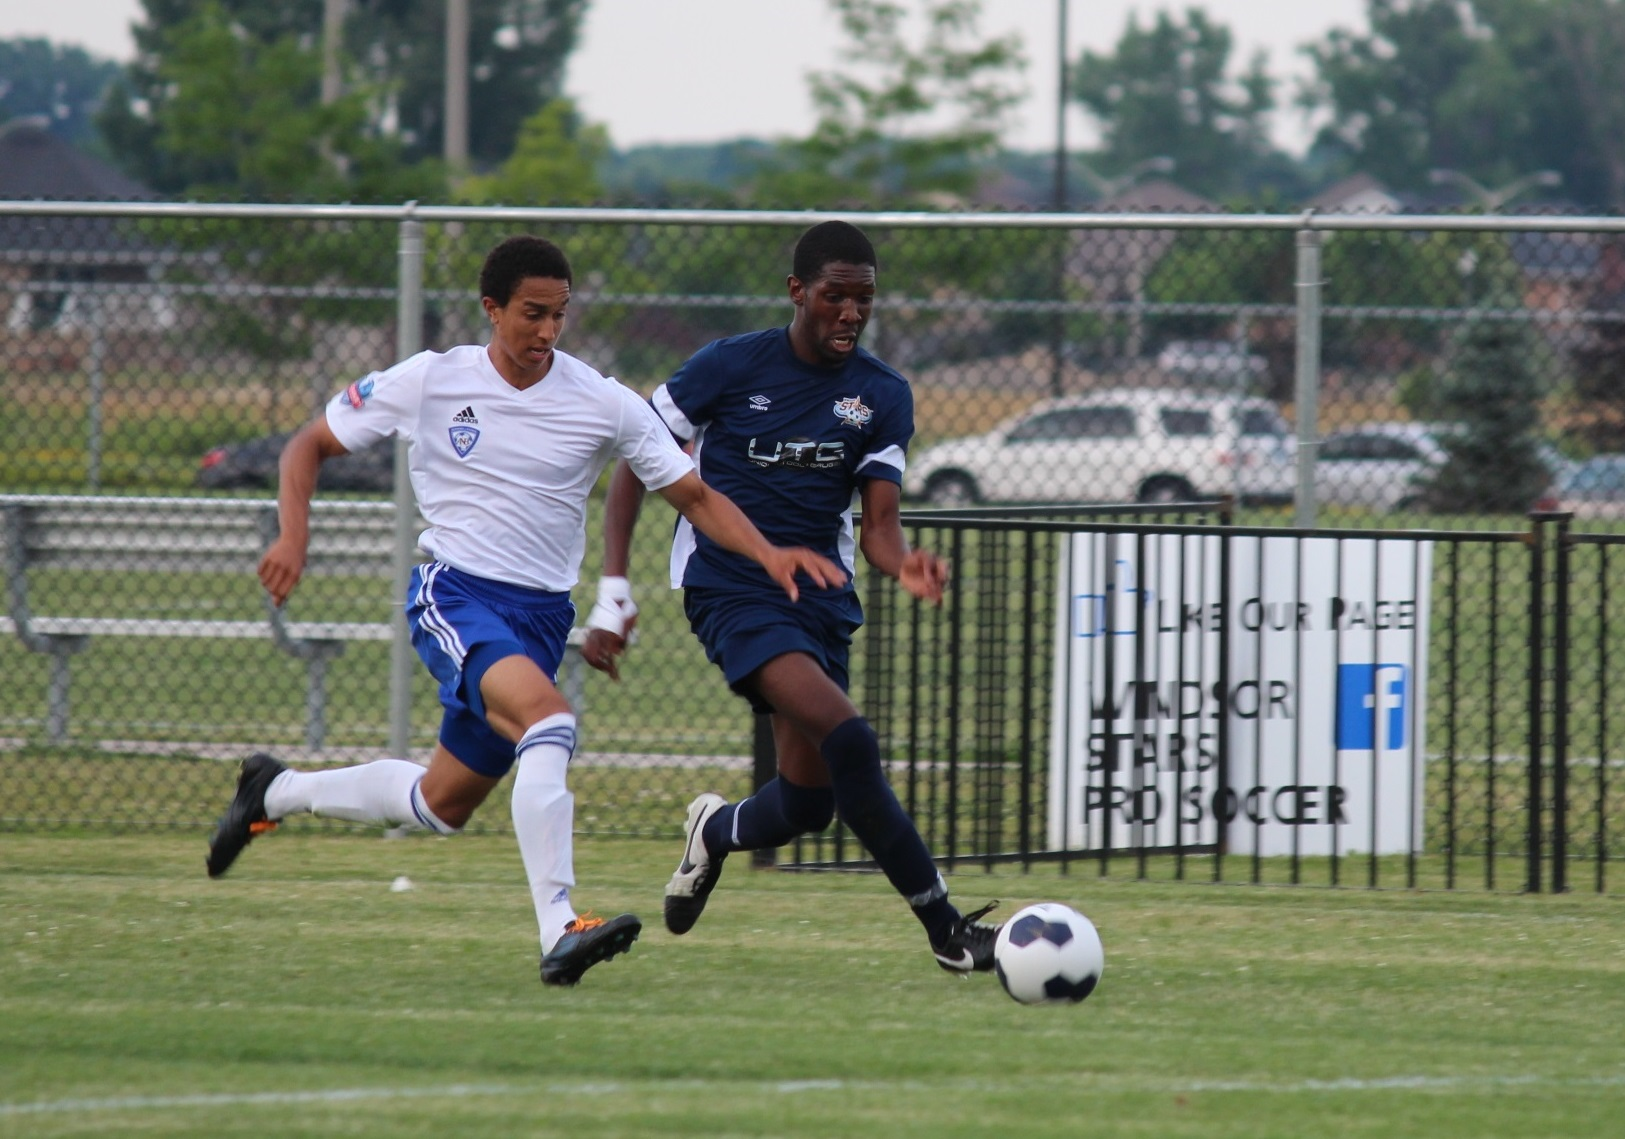 Stars Host Undefeated TFC Squad